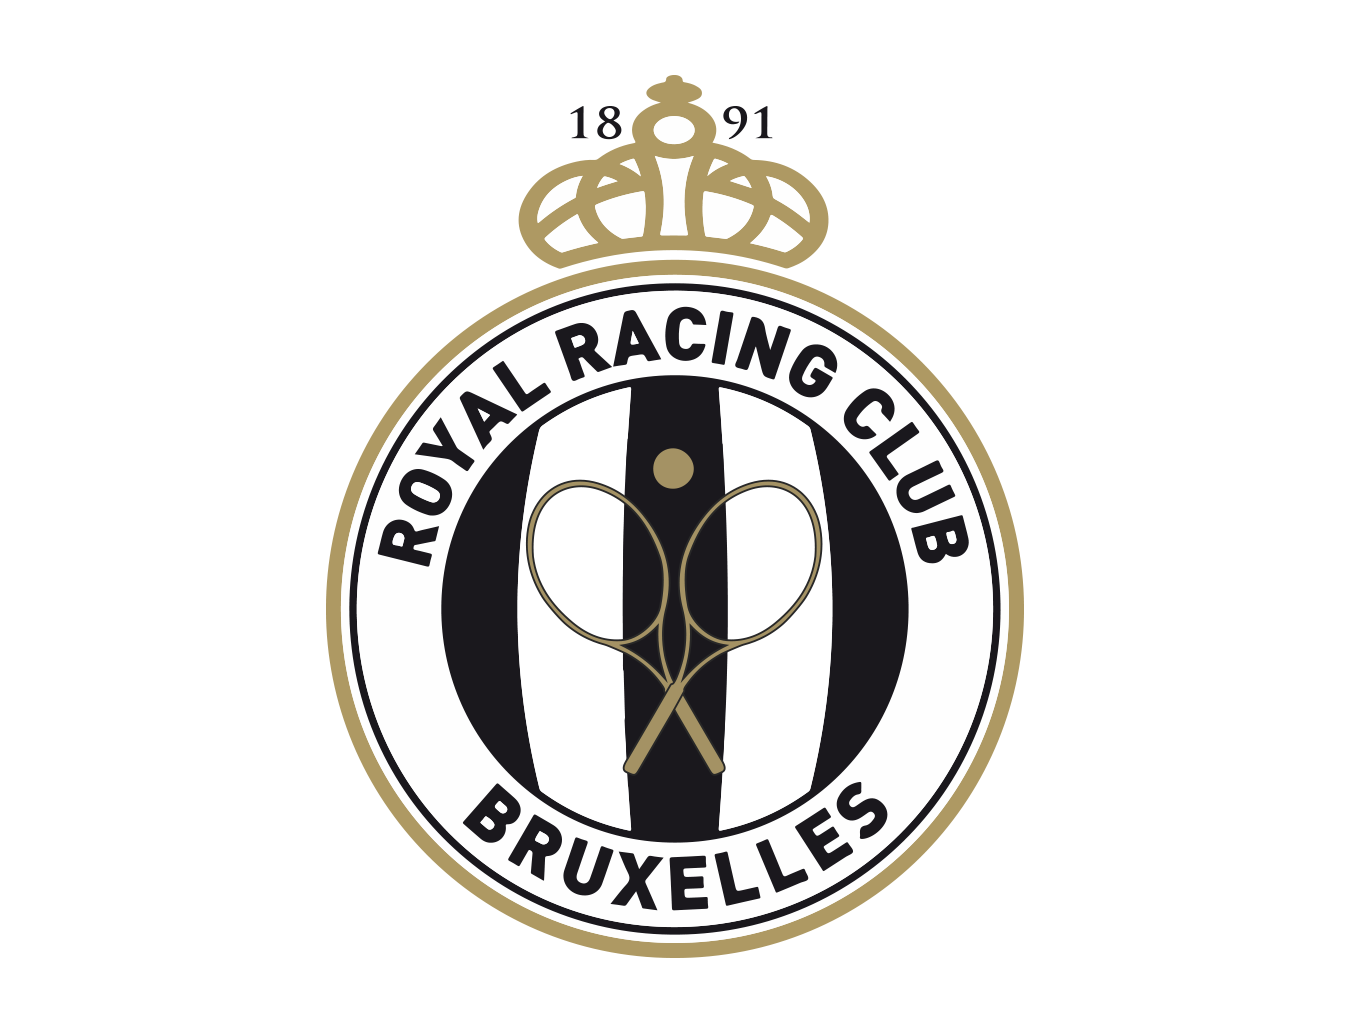 Royal Racing Club Bruxelles